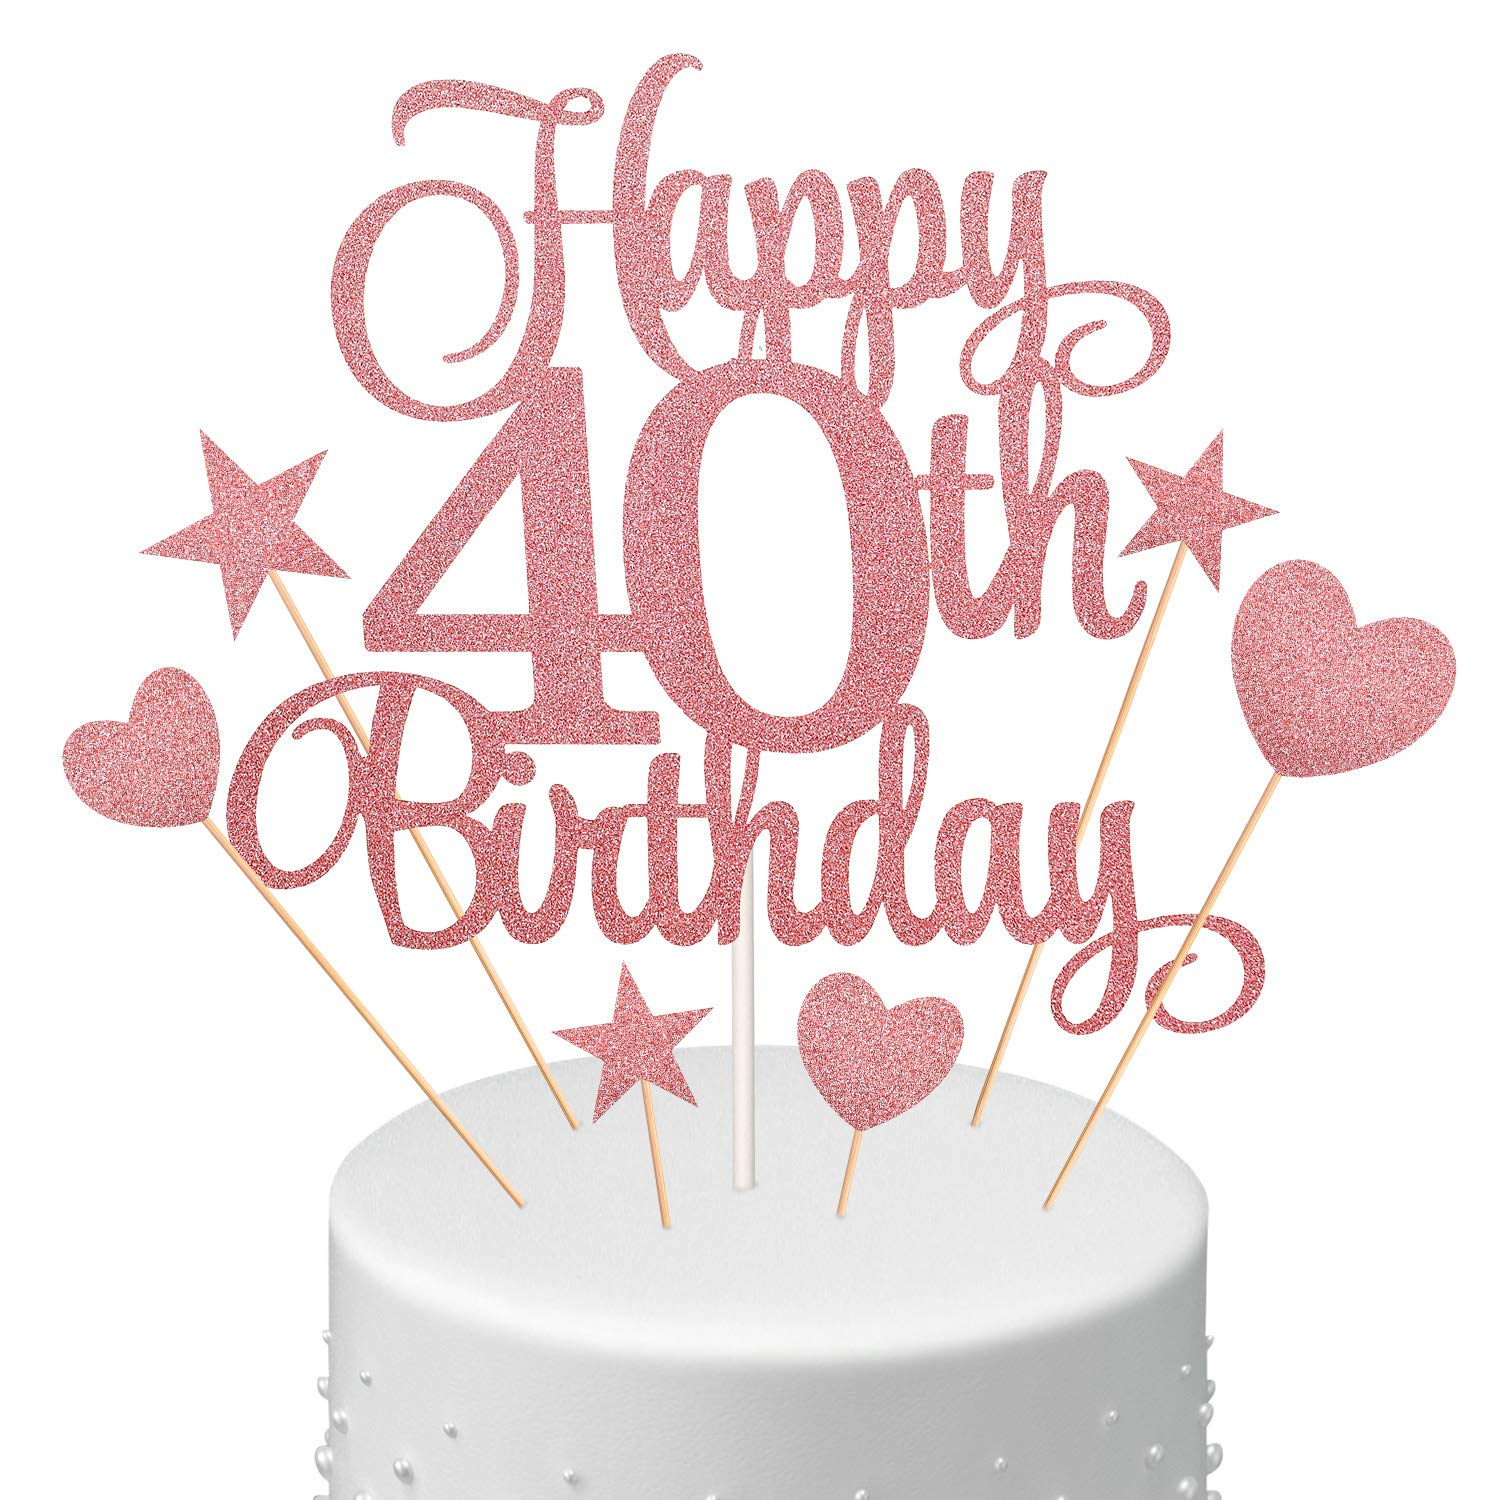 40th Birthday Cake Topper Set, Happy 40th Birthday Cake Topper with Heart Star Cupcake Cake Topper Picks Glitter Cake Decoration for Birthday Party Cake Supplies, Rose Gold